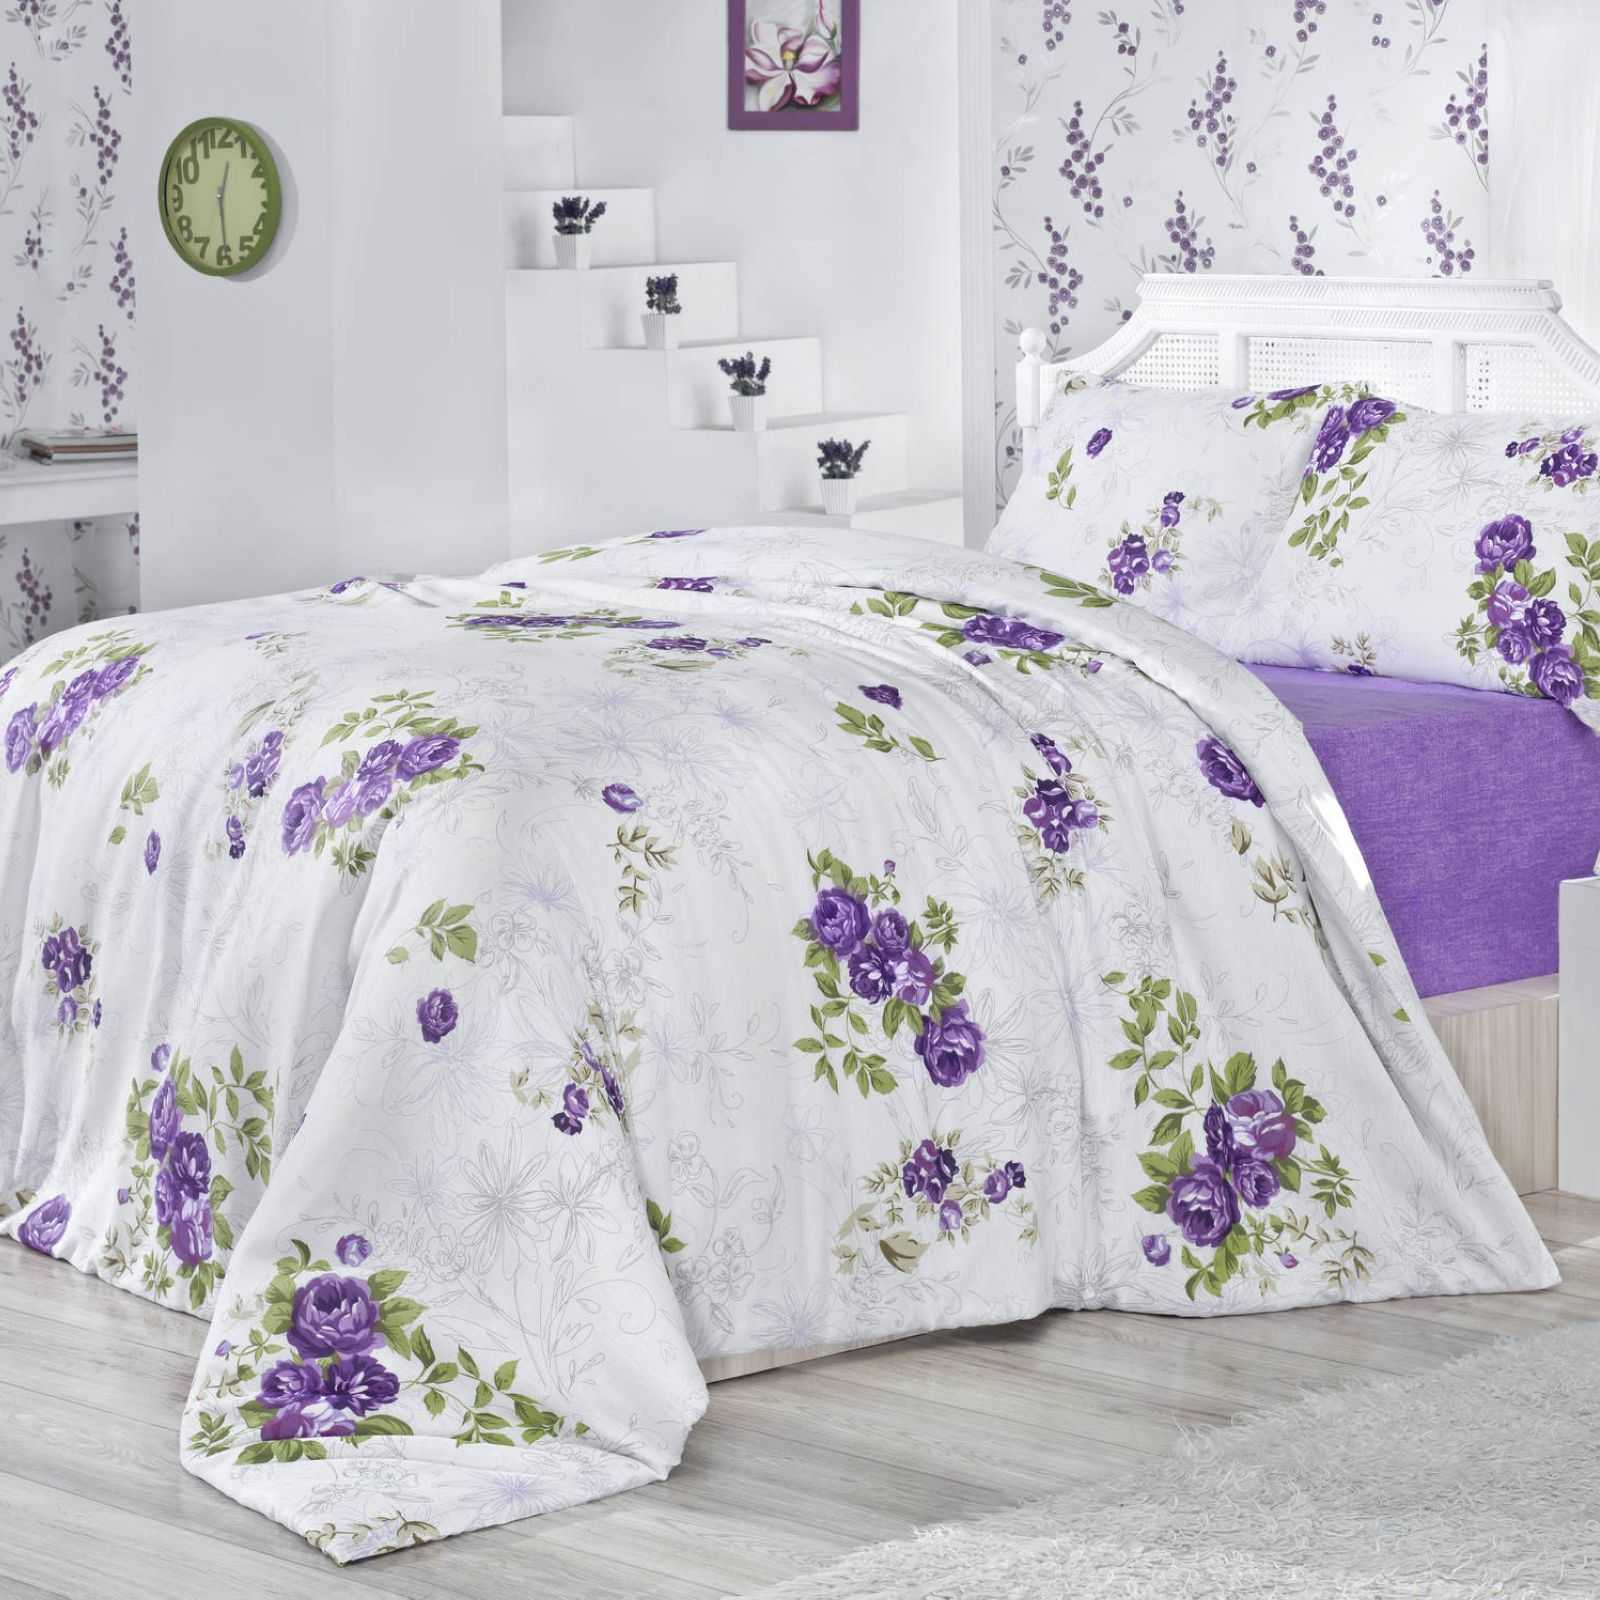 nazenin jelena parure de lit blanc lilas et vert brandalley. Black Bedroom Furniture Sets. Home Design Ideas